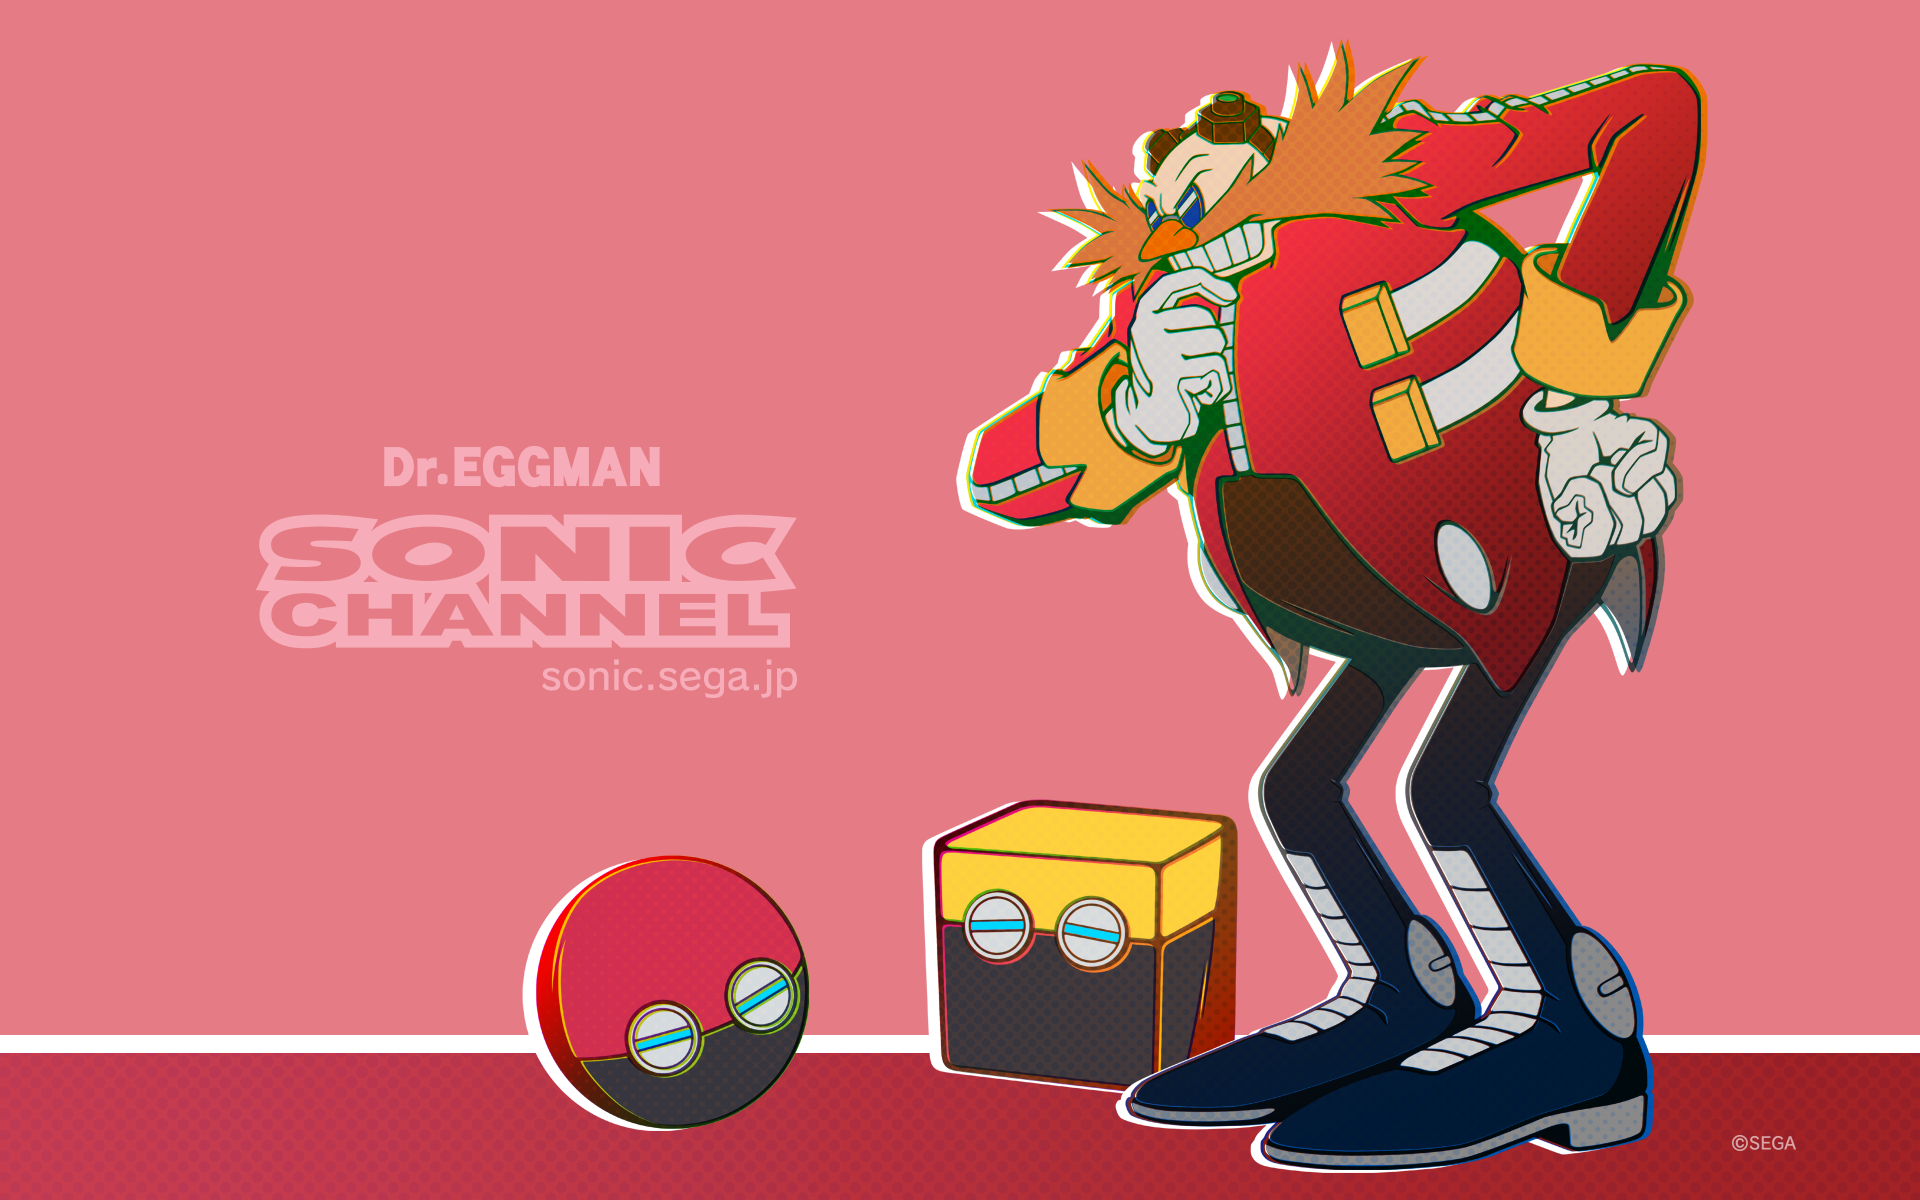 http://sonic.sega.jp/SonicChannel/enjoy/image/wallpaper_193_eggman_08_pc.png